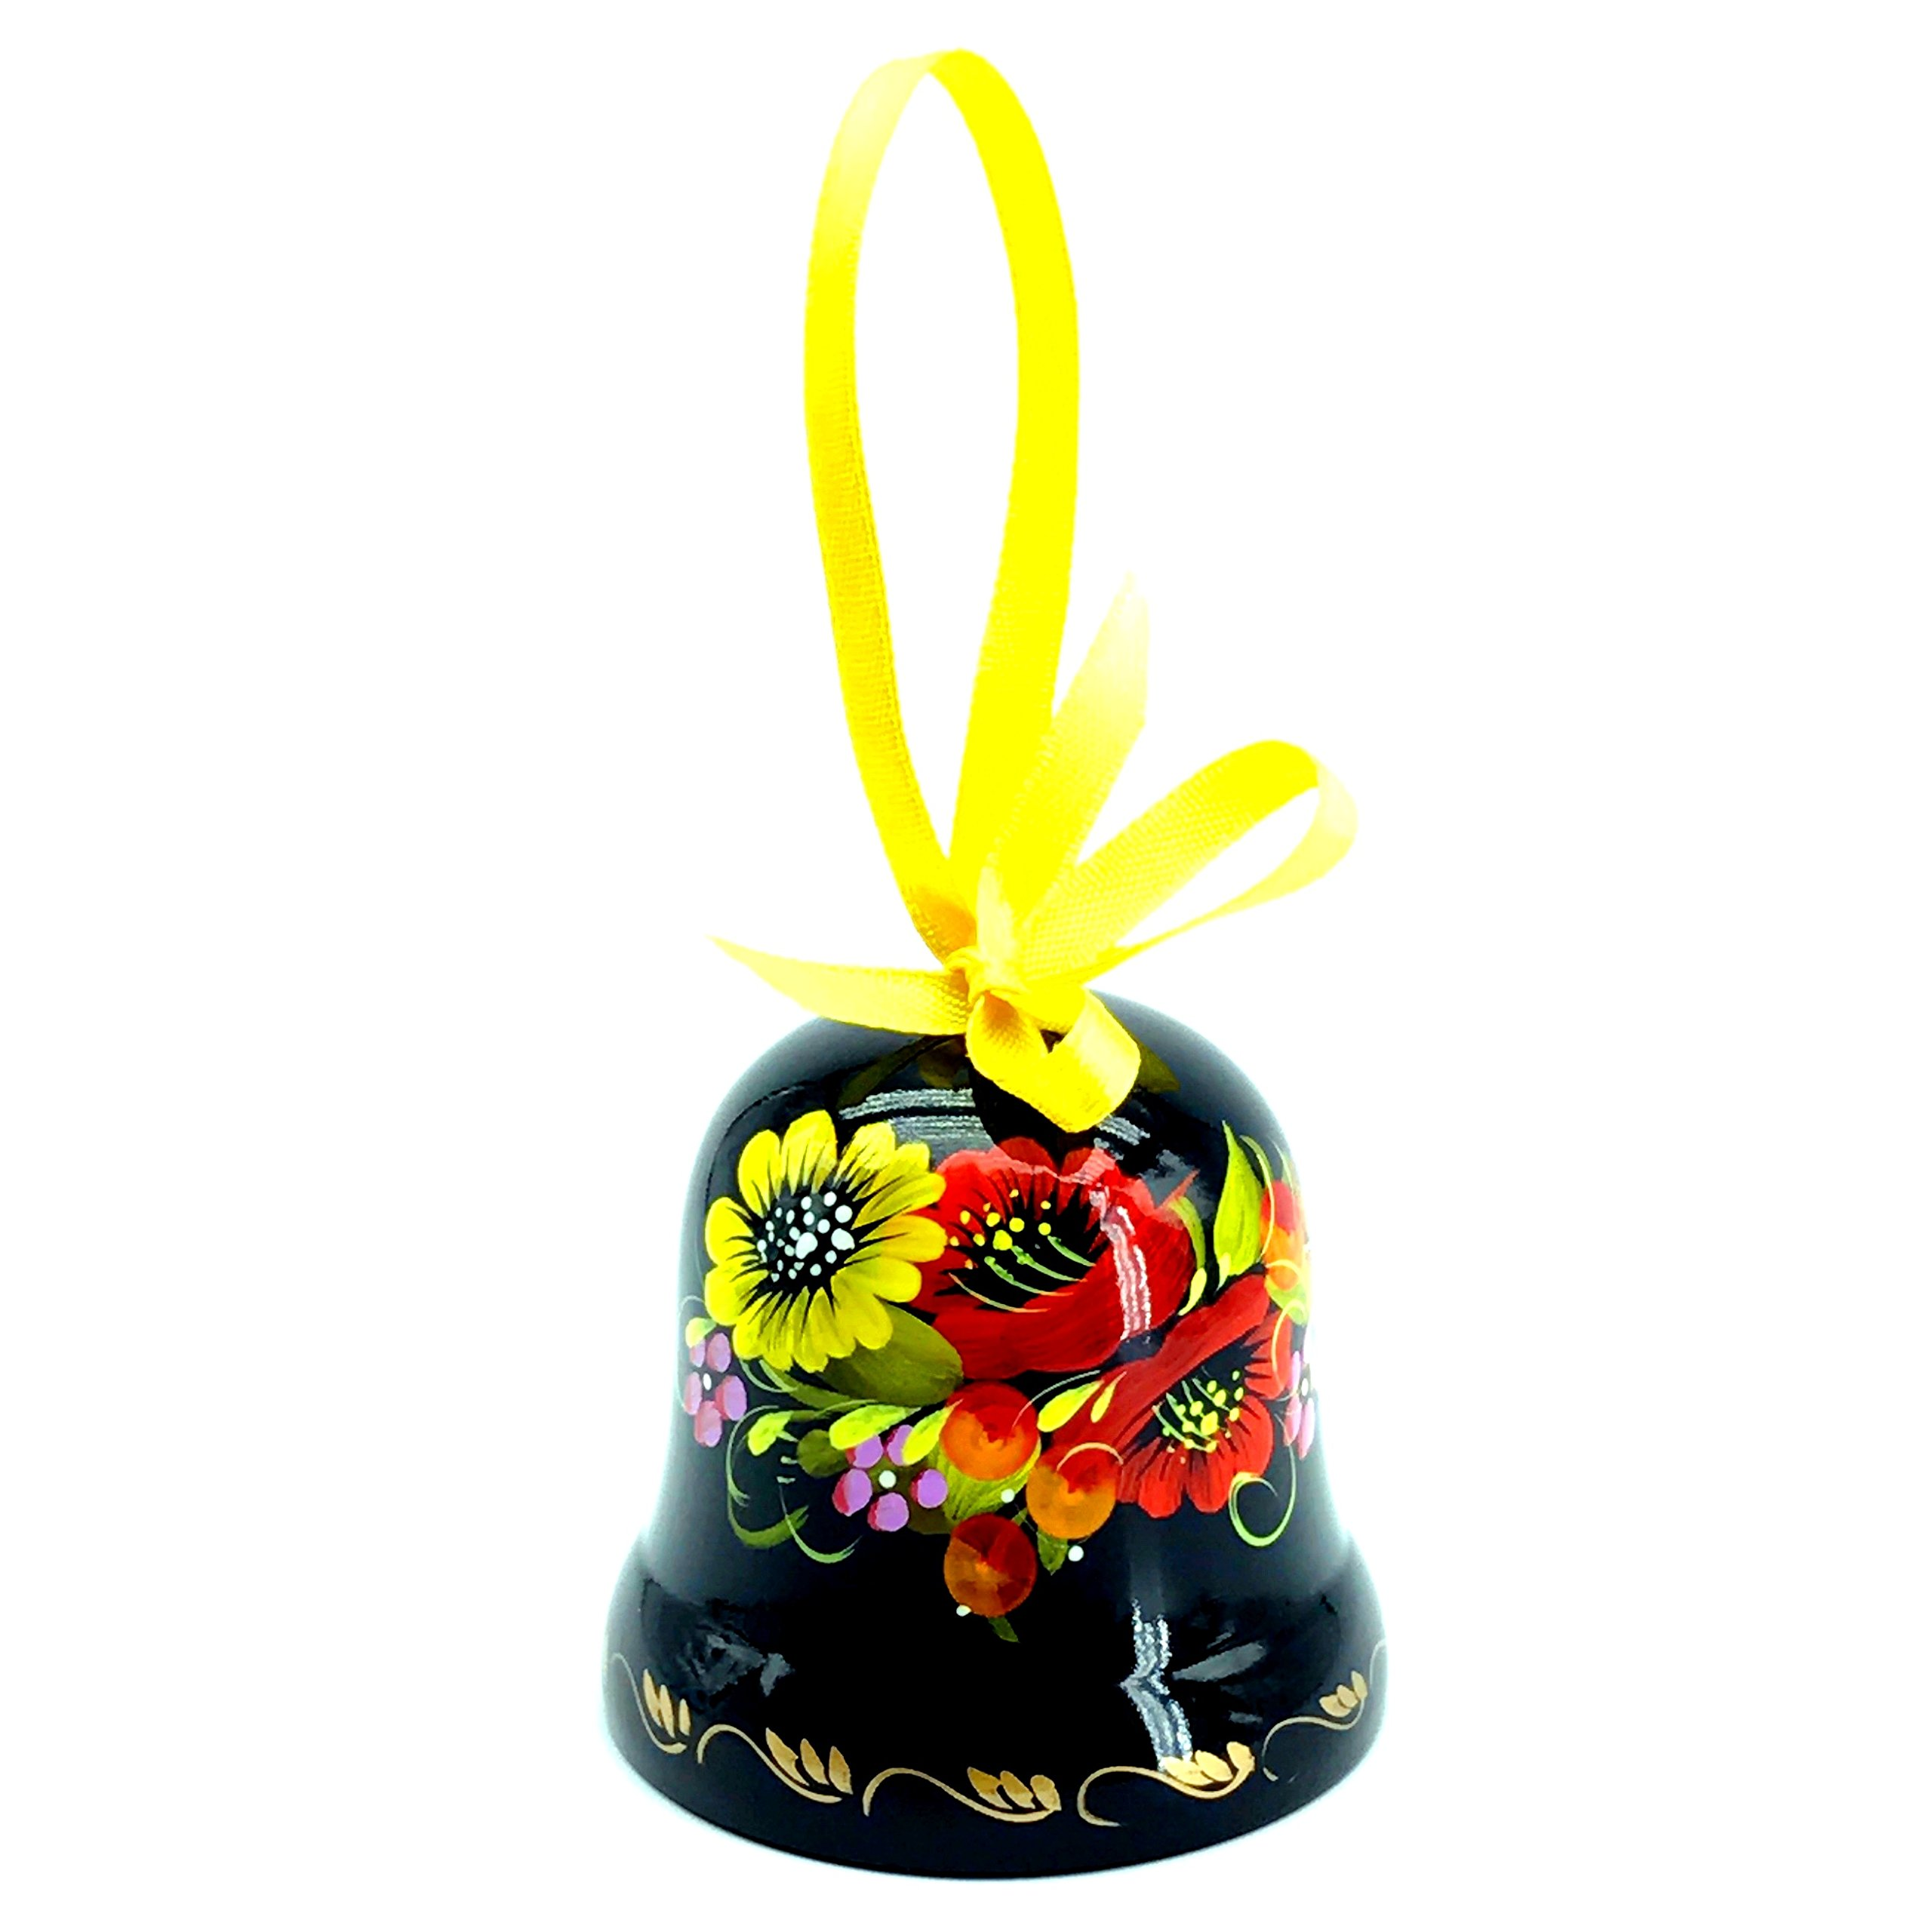 Ukrainian Souvenir Hand Painted Lacquered Wooden Decorative Bell with Ethnic Petrykivka Floral Painting, a Nice Home Decor Accent Item in a Gift Box for Women, Hanging or Desktop (Red and Yellow)